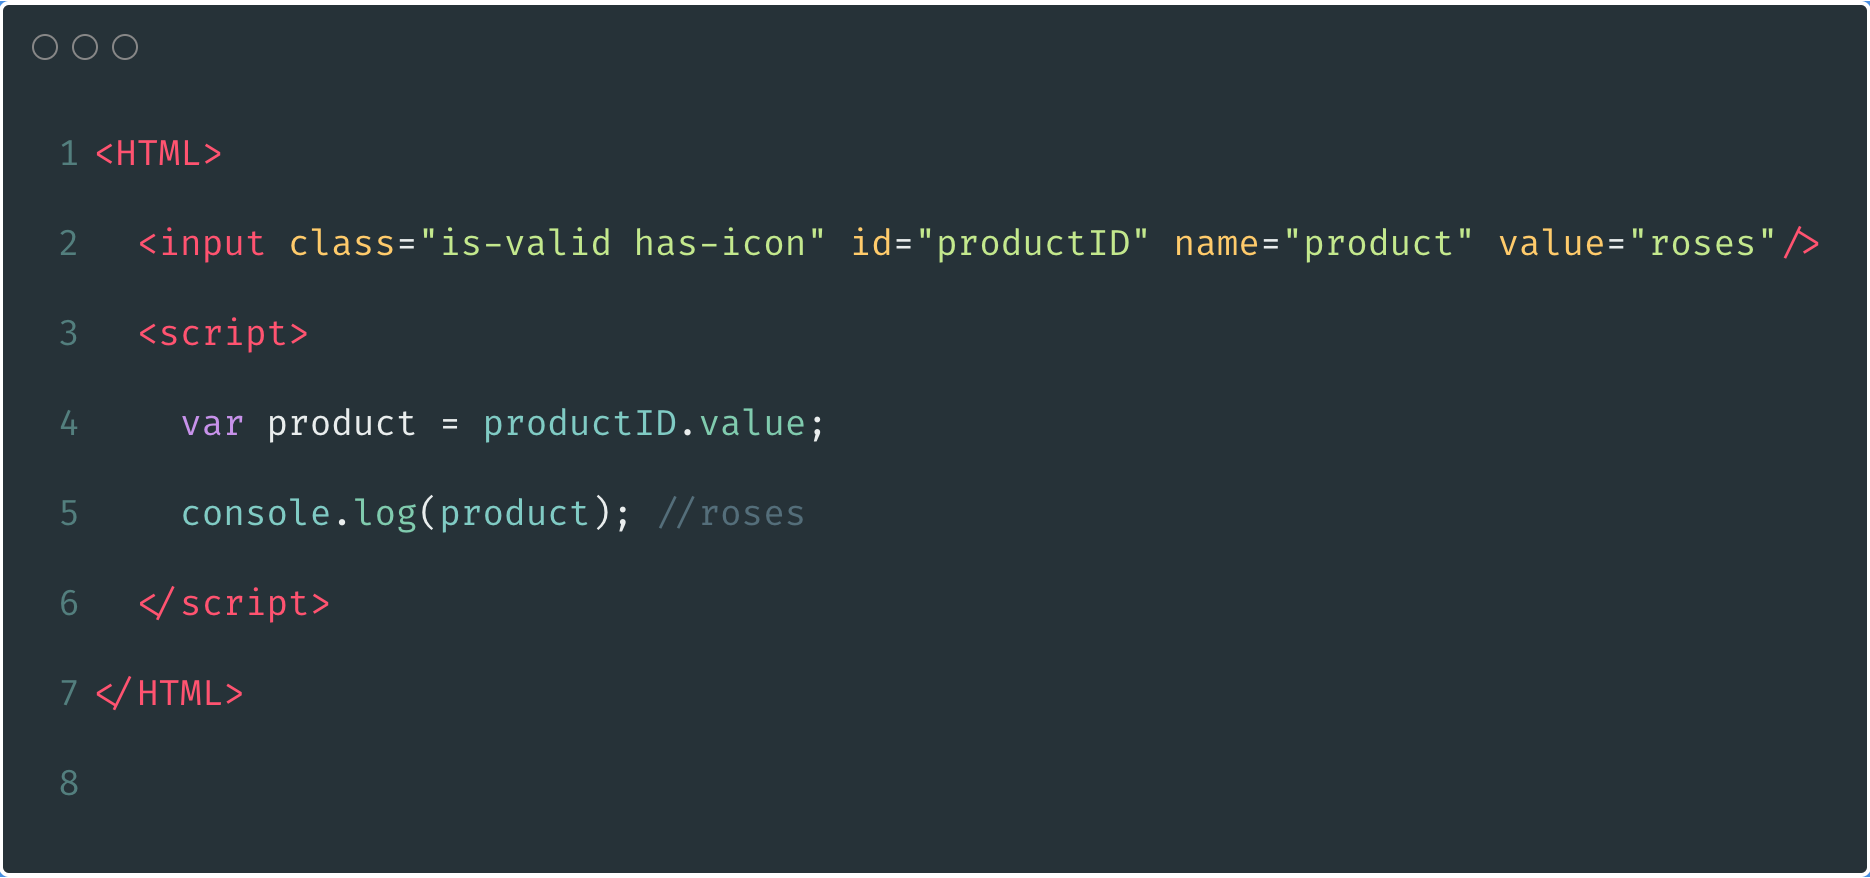 Accessing input values using Id variables